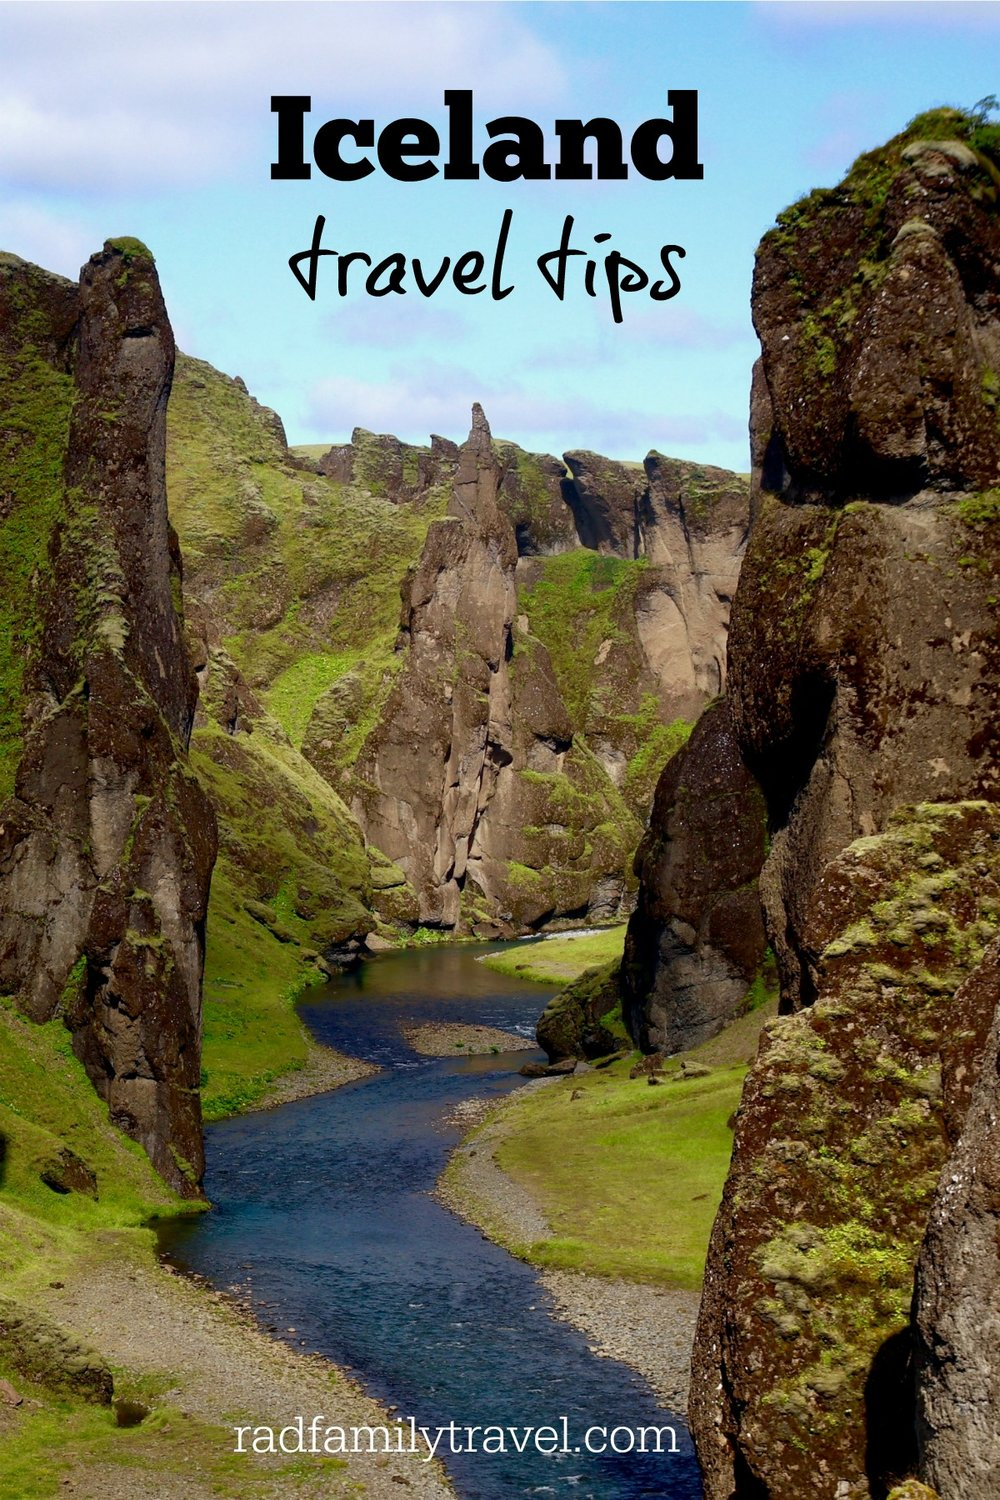 Iceland travel tips.jpg